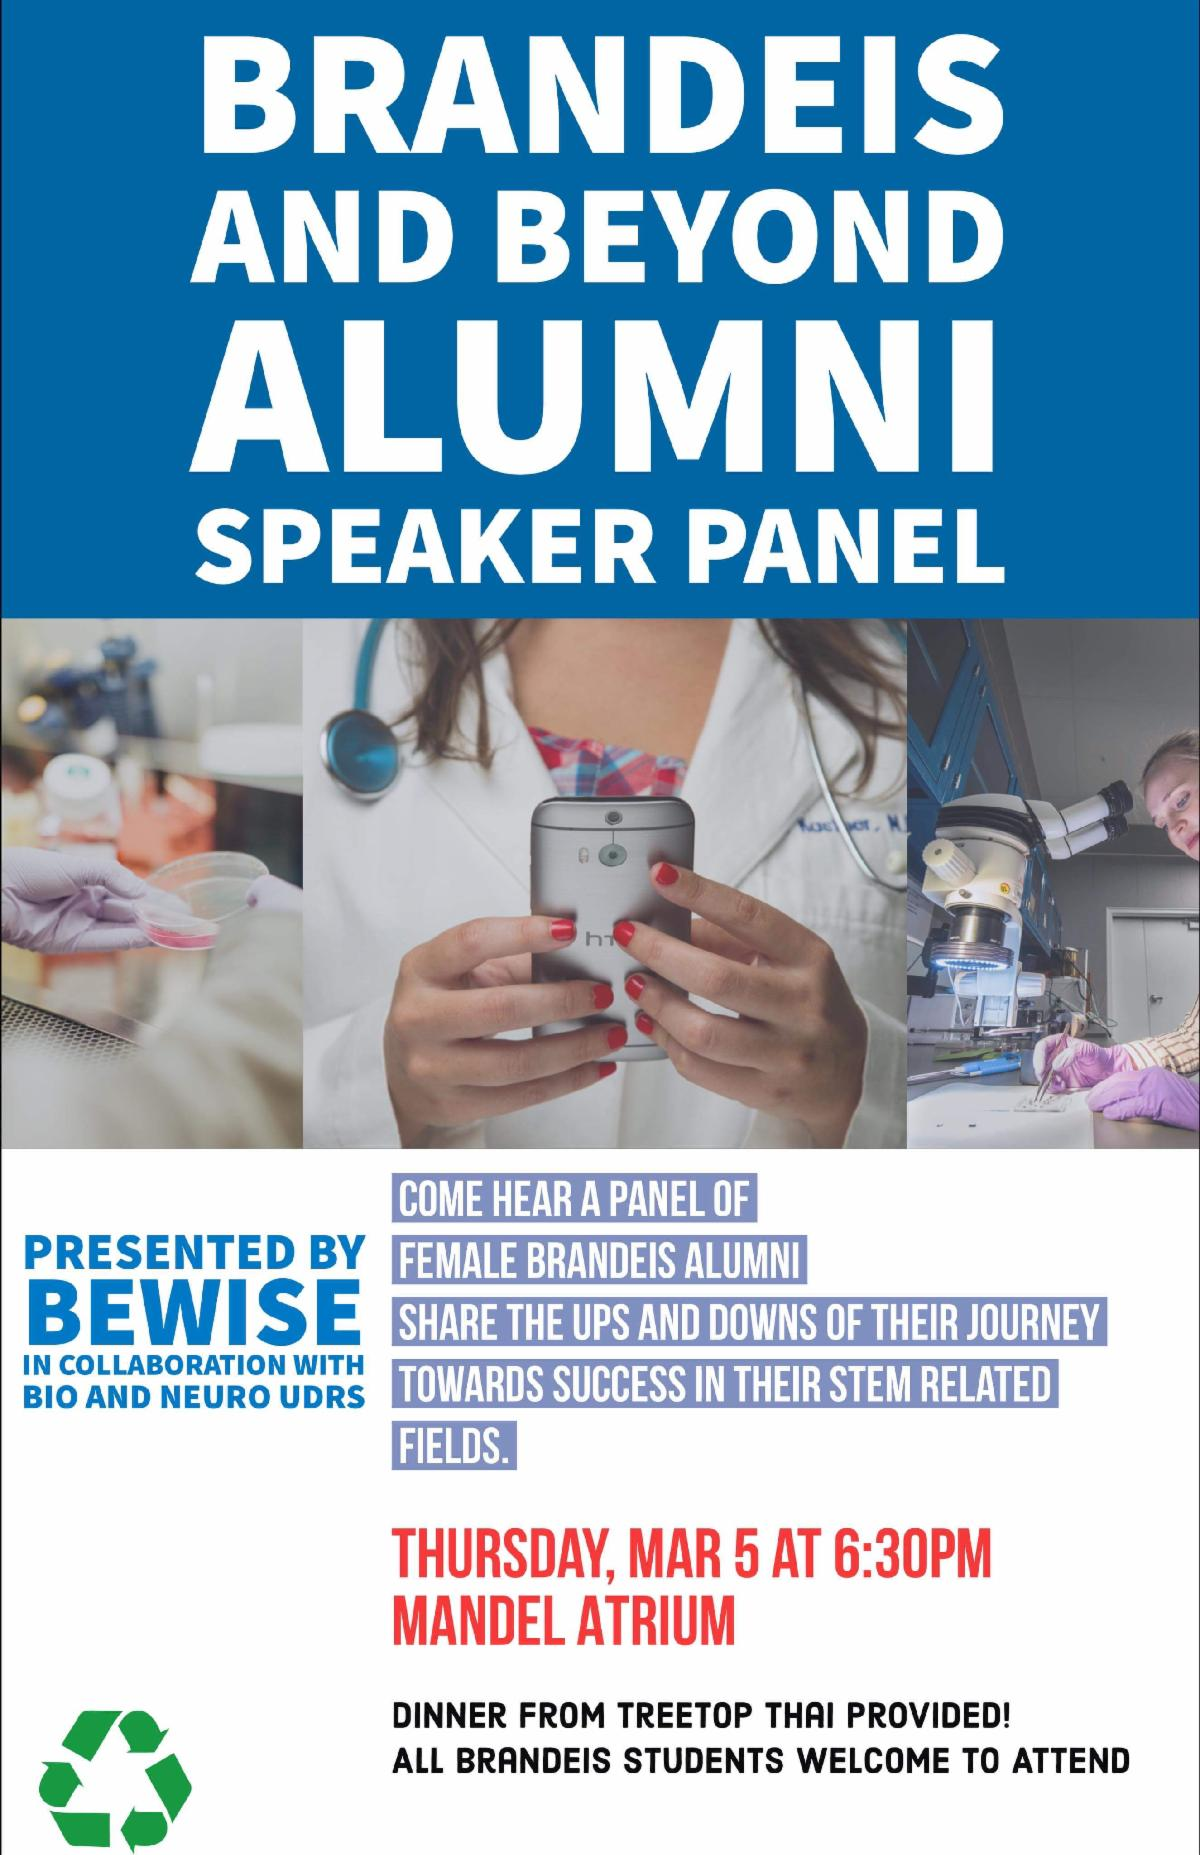 A flyer of Brandeis and Beyond Alumni Speaker Panel with pictures of women in scientific settings.